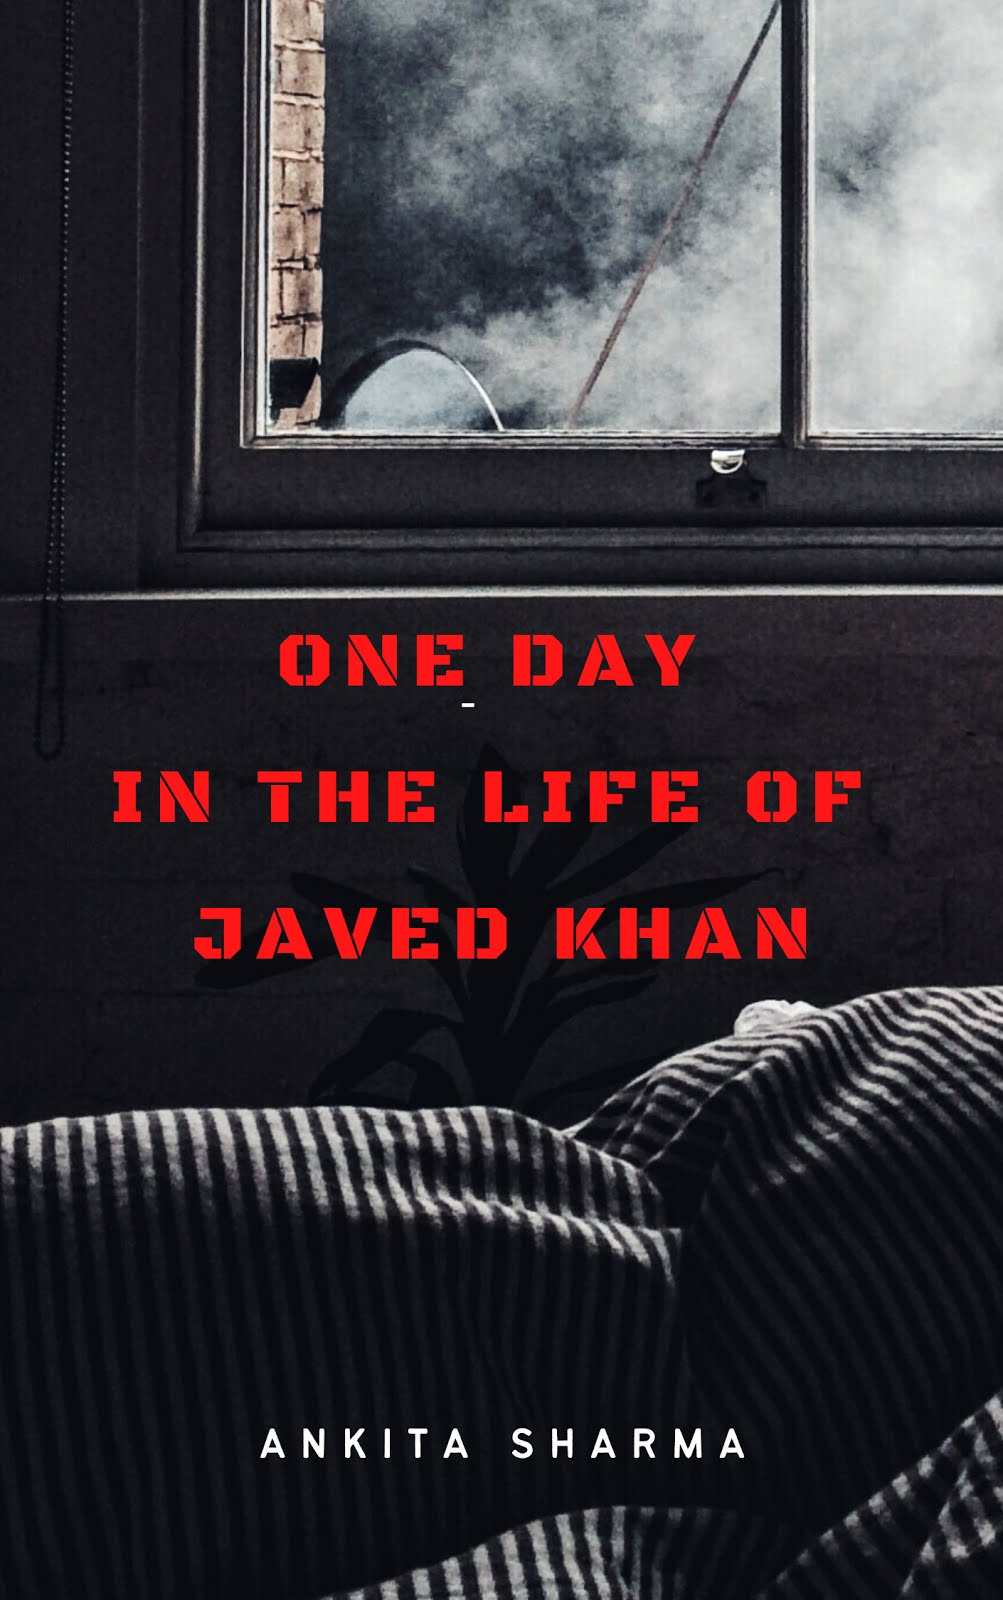 One Day in the Life of Javed Khan